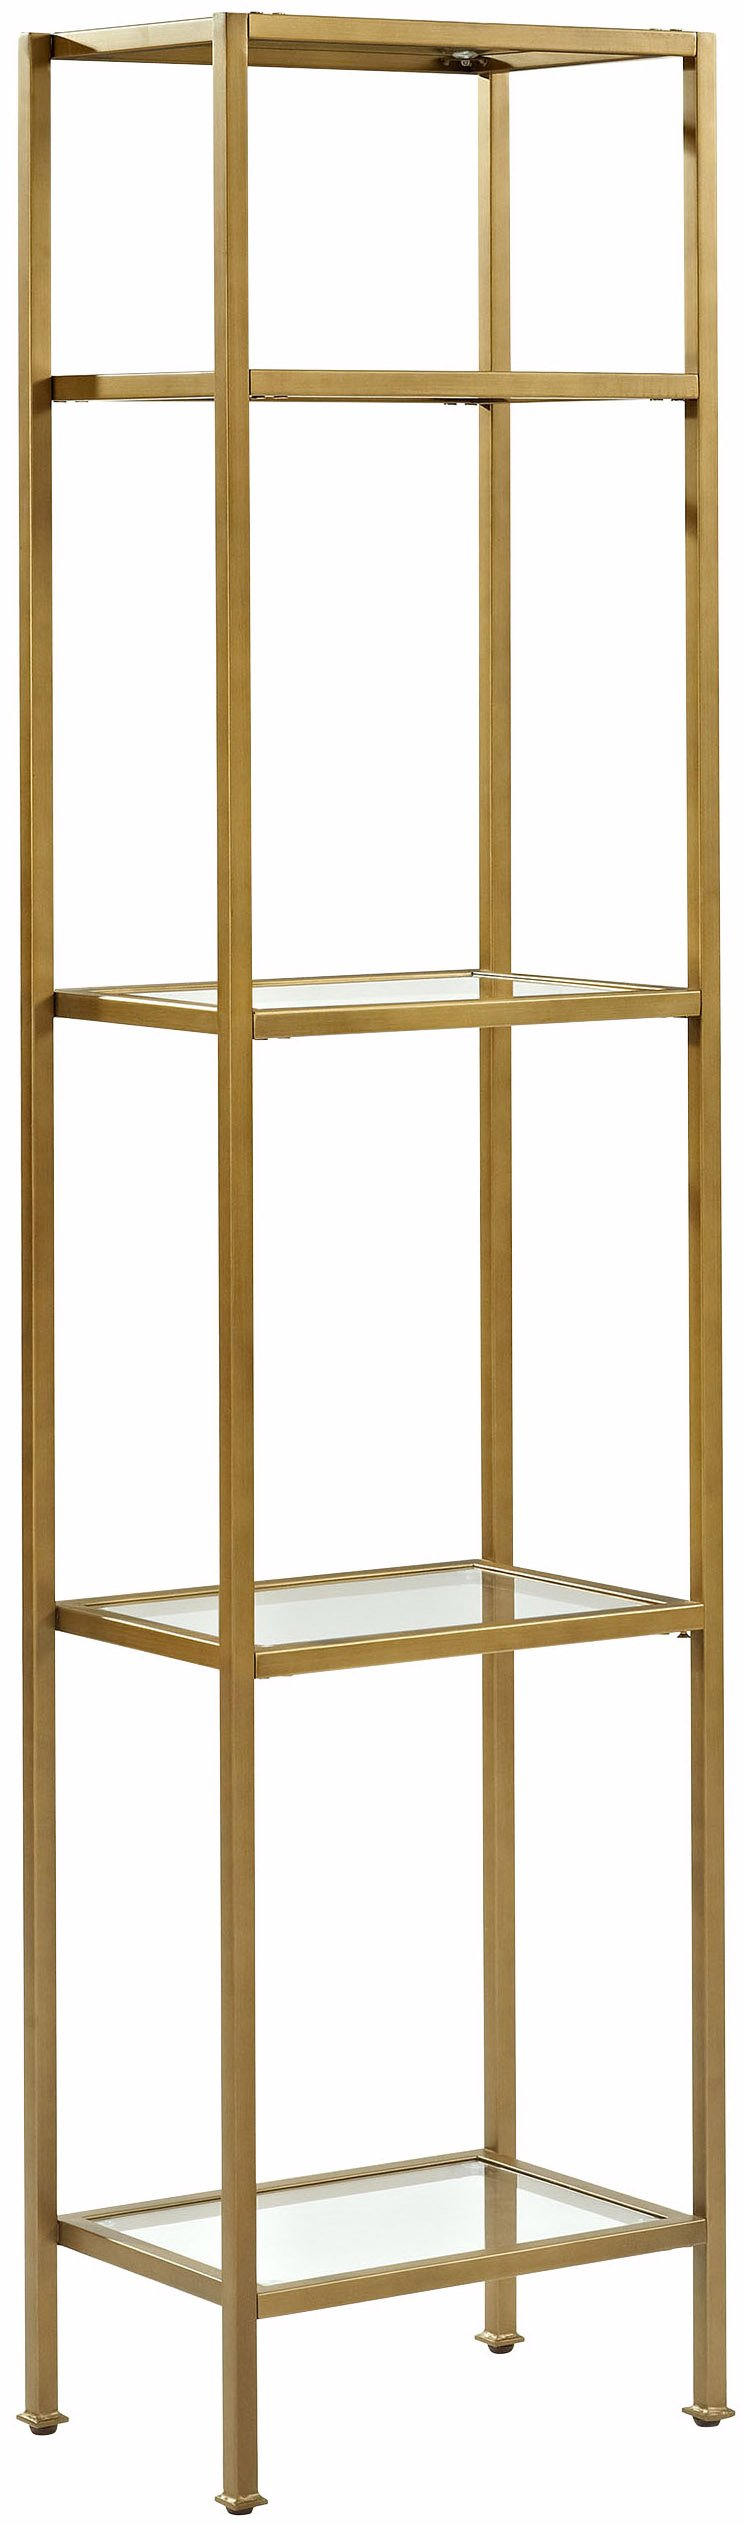 Crosley Furniture CF6114-GL Aimee Narrow Etagere Bookcase - Gold and Glass